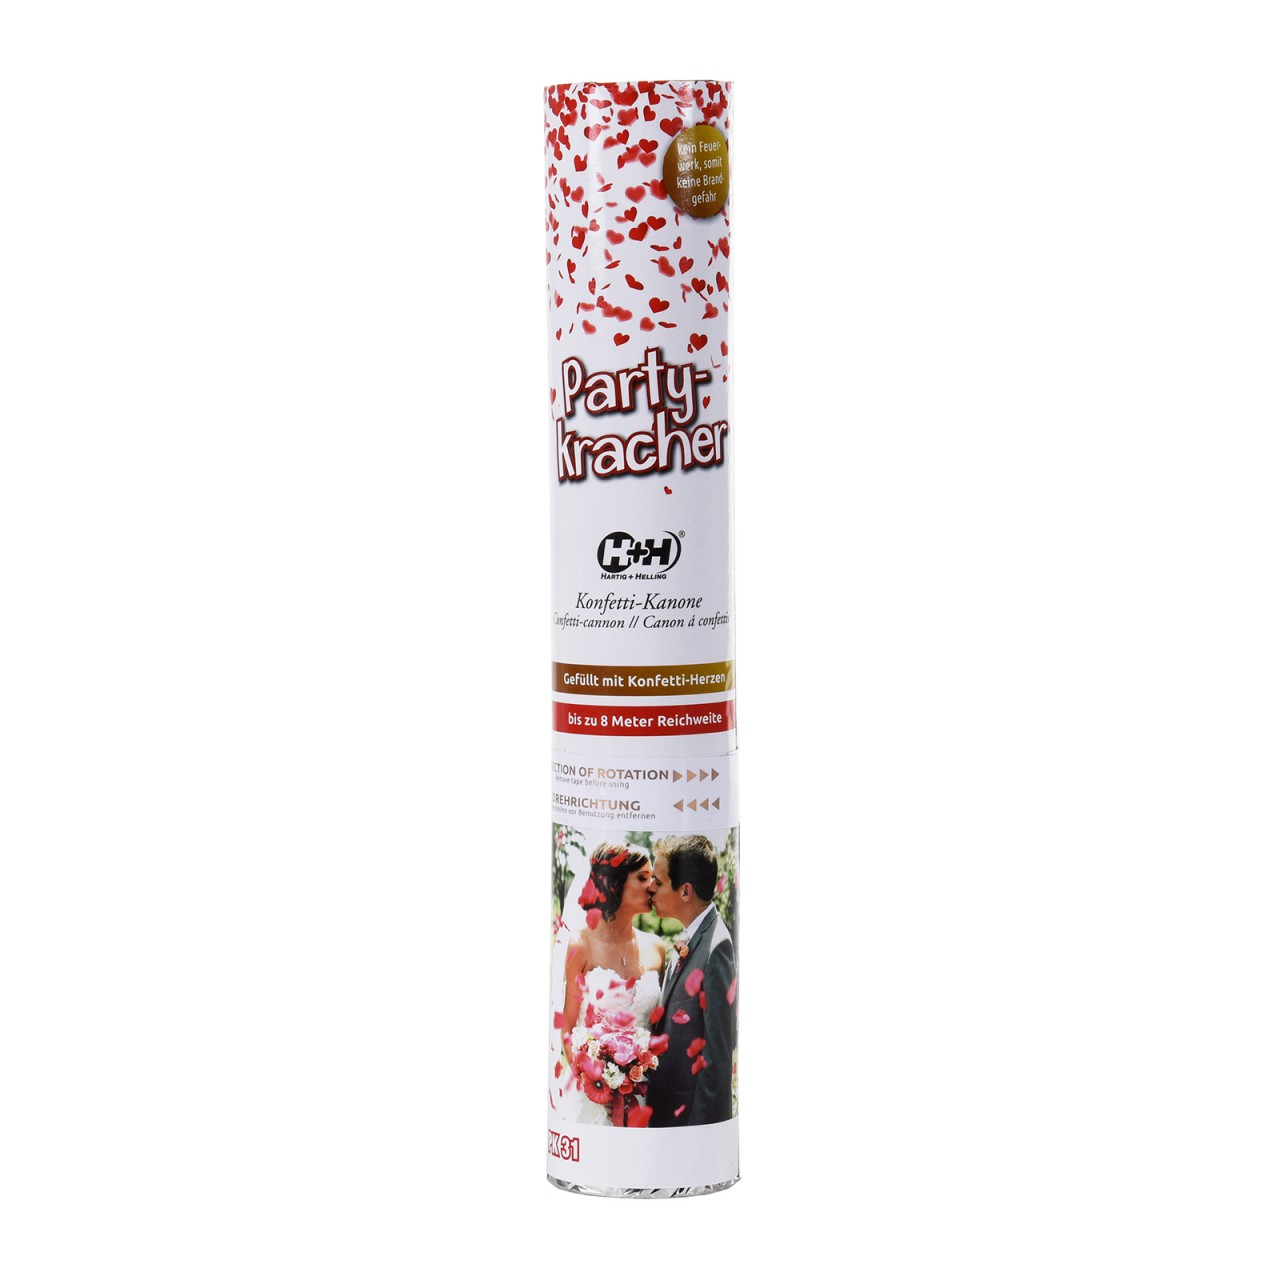 H+H PK 31 Party banger heart Canon Confettis - 30g